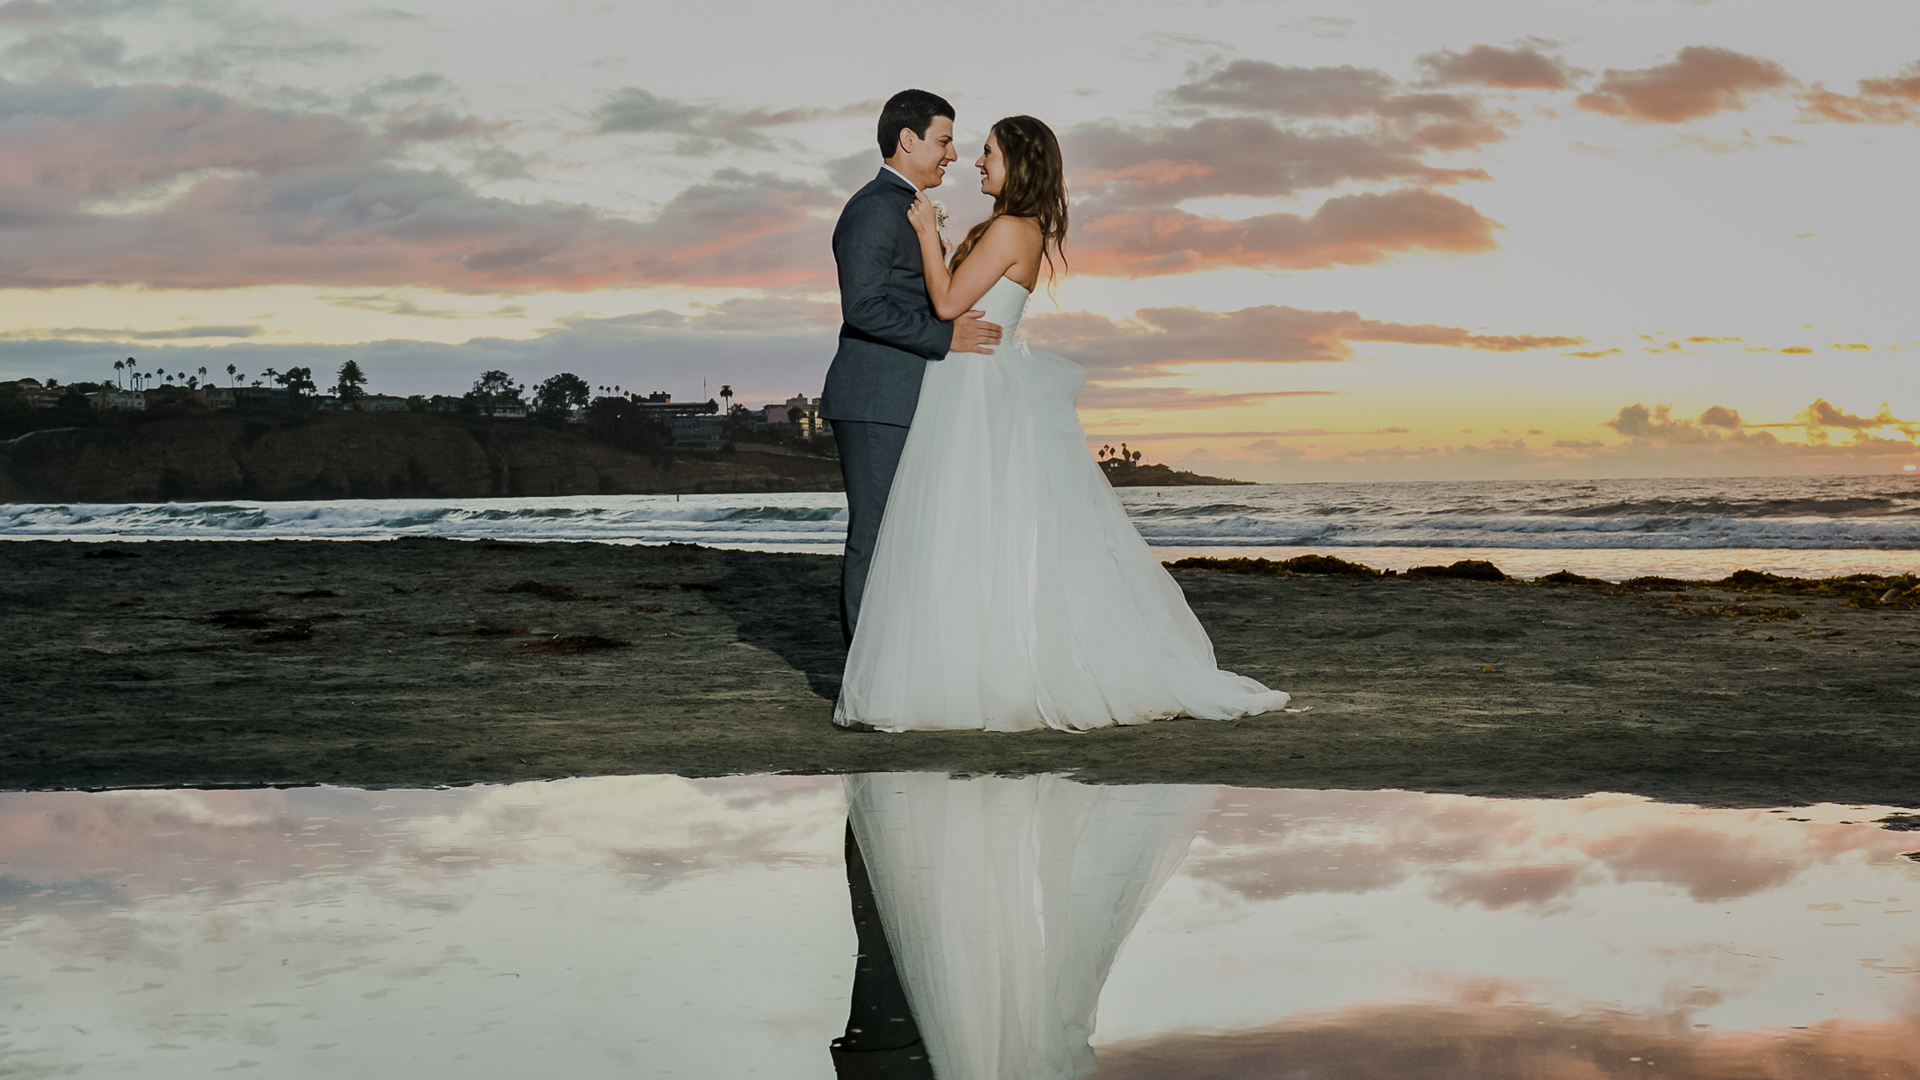 Check portfolios, pricing and availability for wedding photographers in San Diego